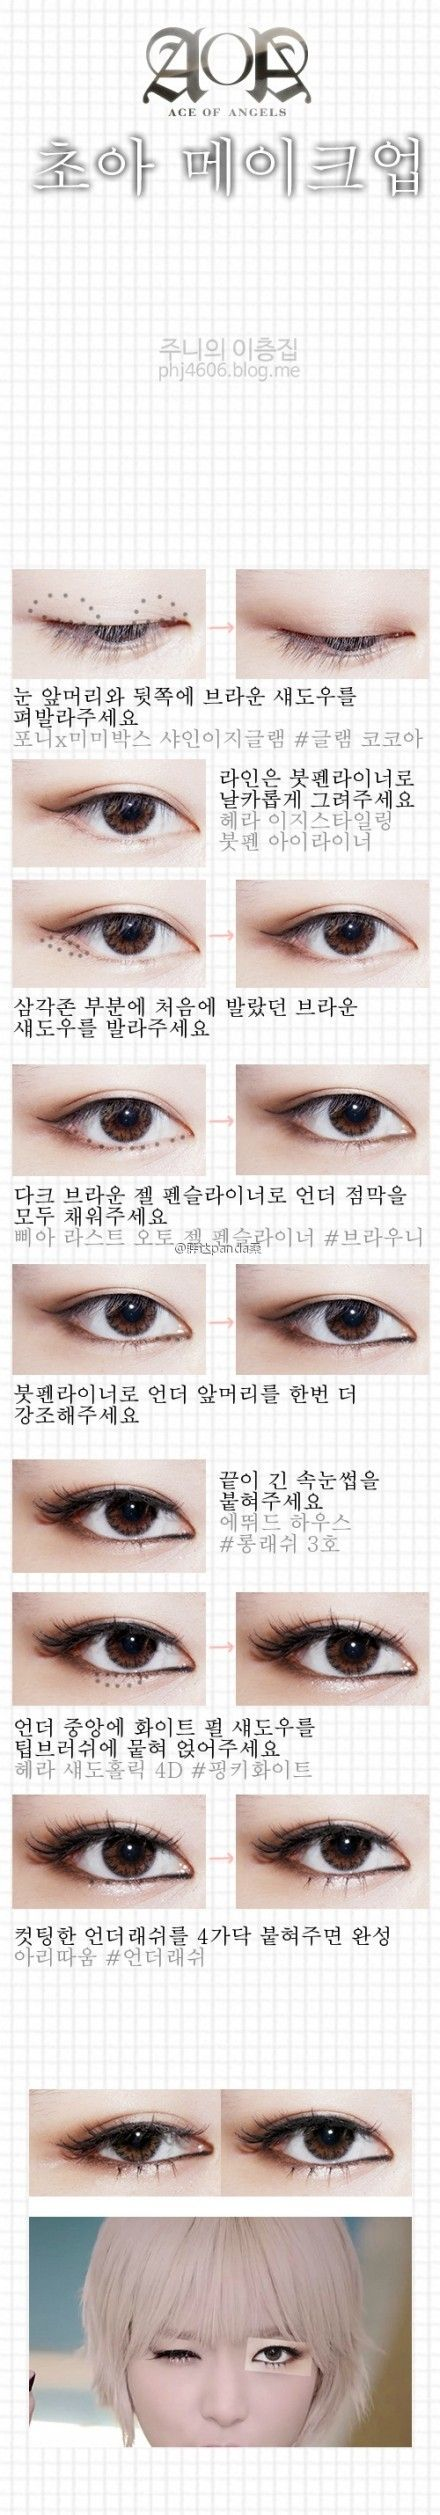 Korean make up AOA || http://nerium.kr/preenroll/debbiekrug?alias=debbiekrug